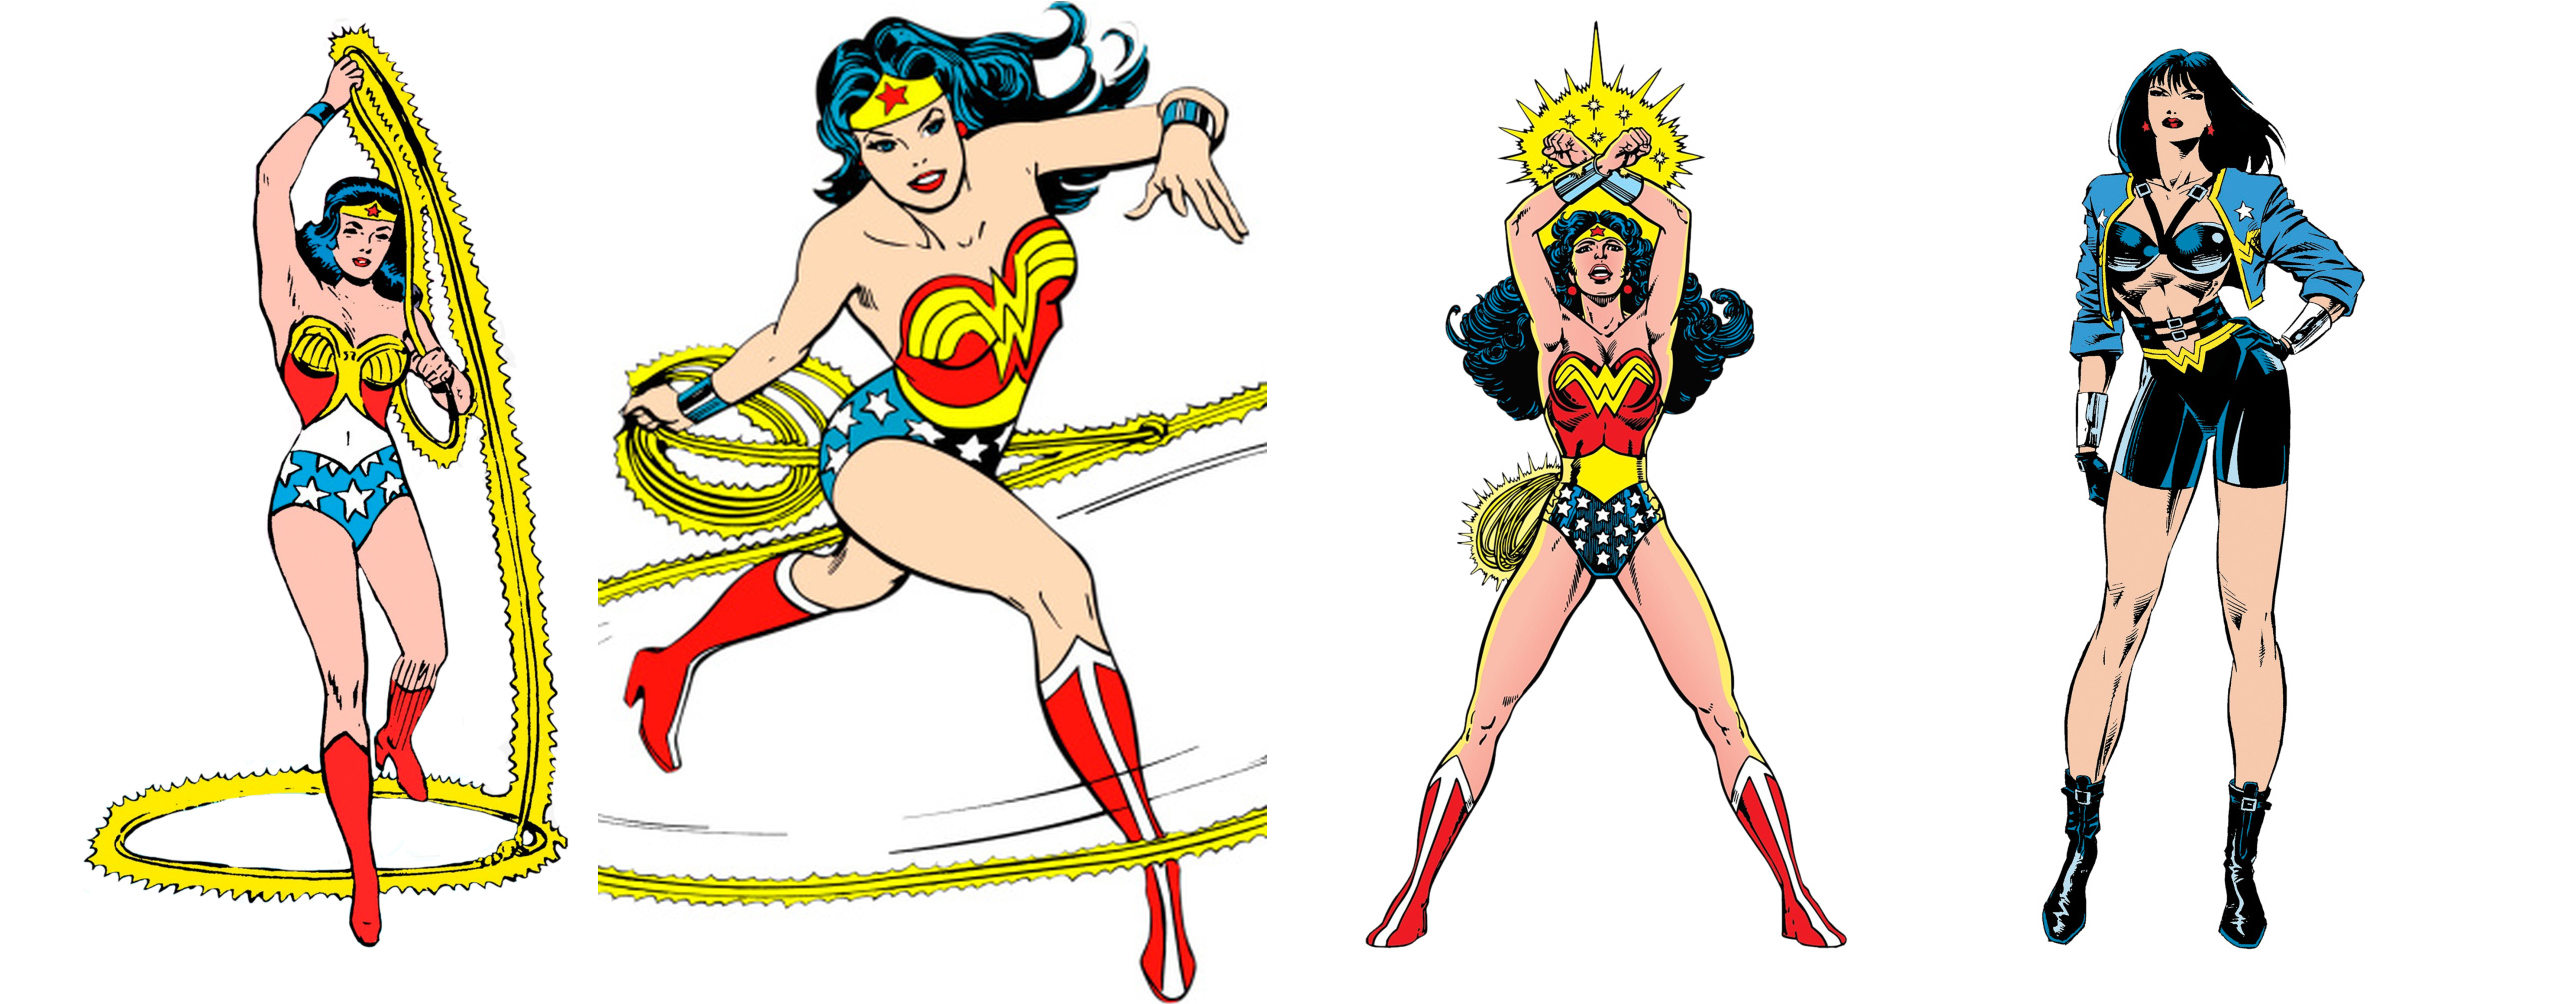 wonder woman evolution comic2